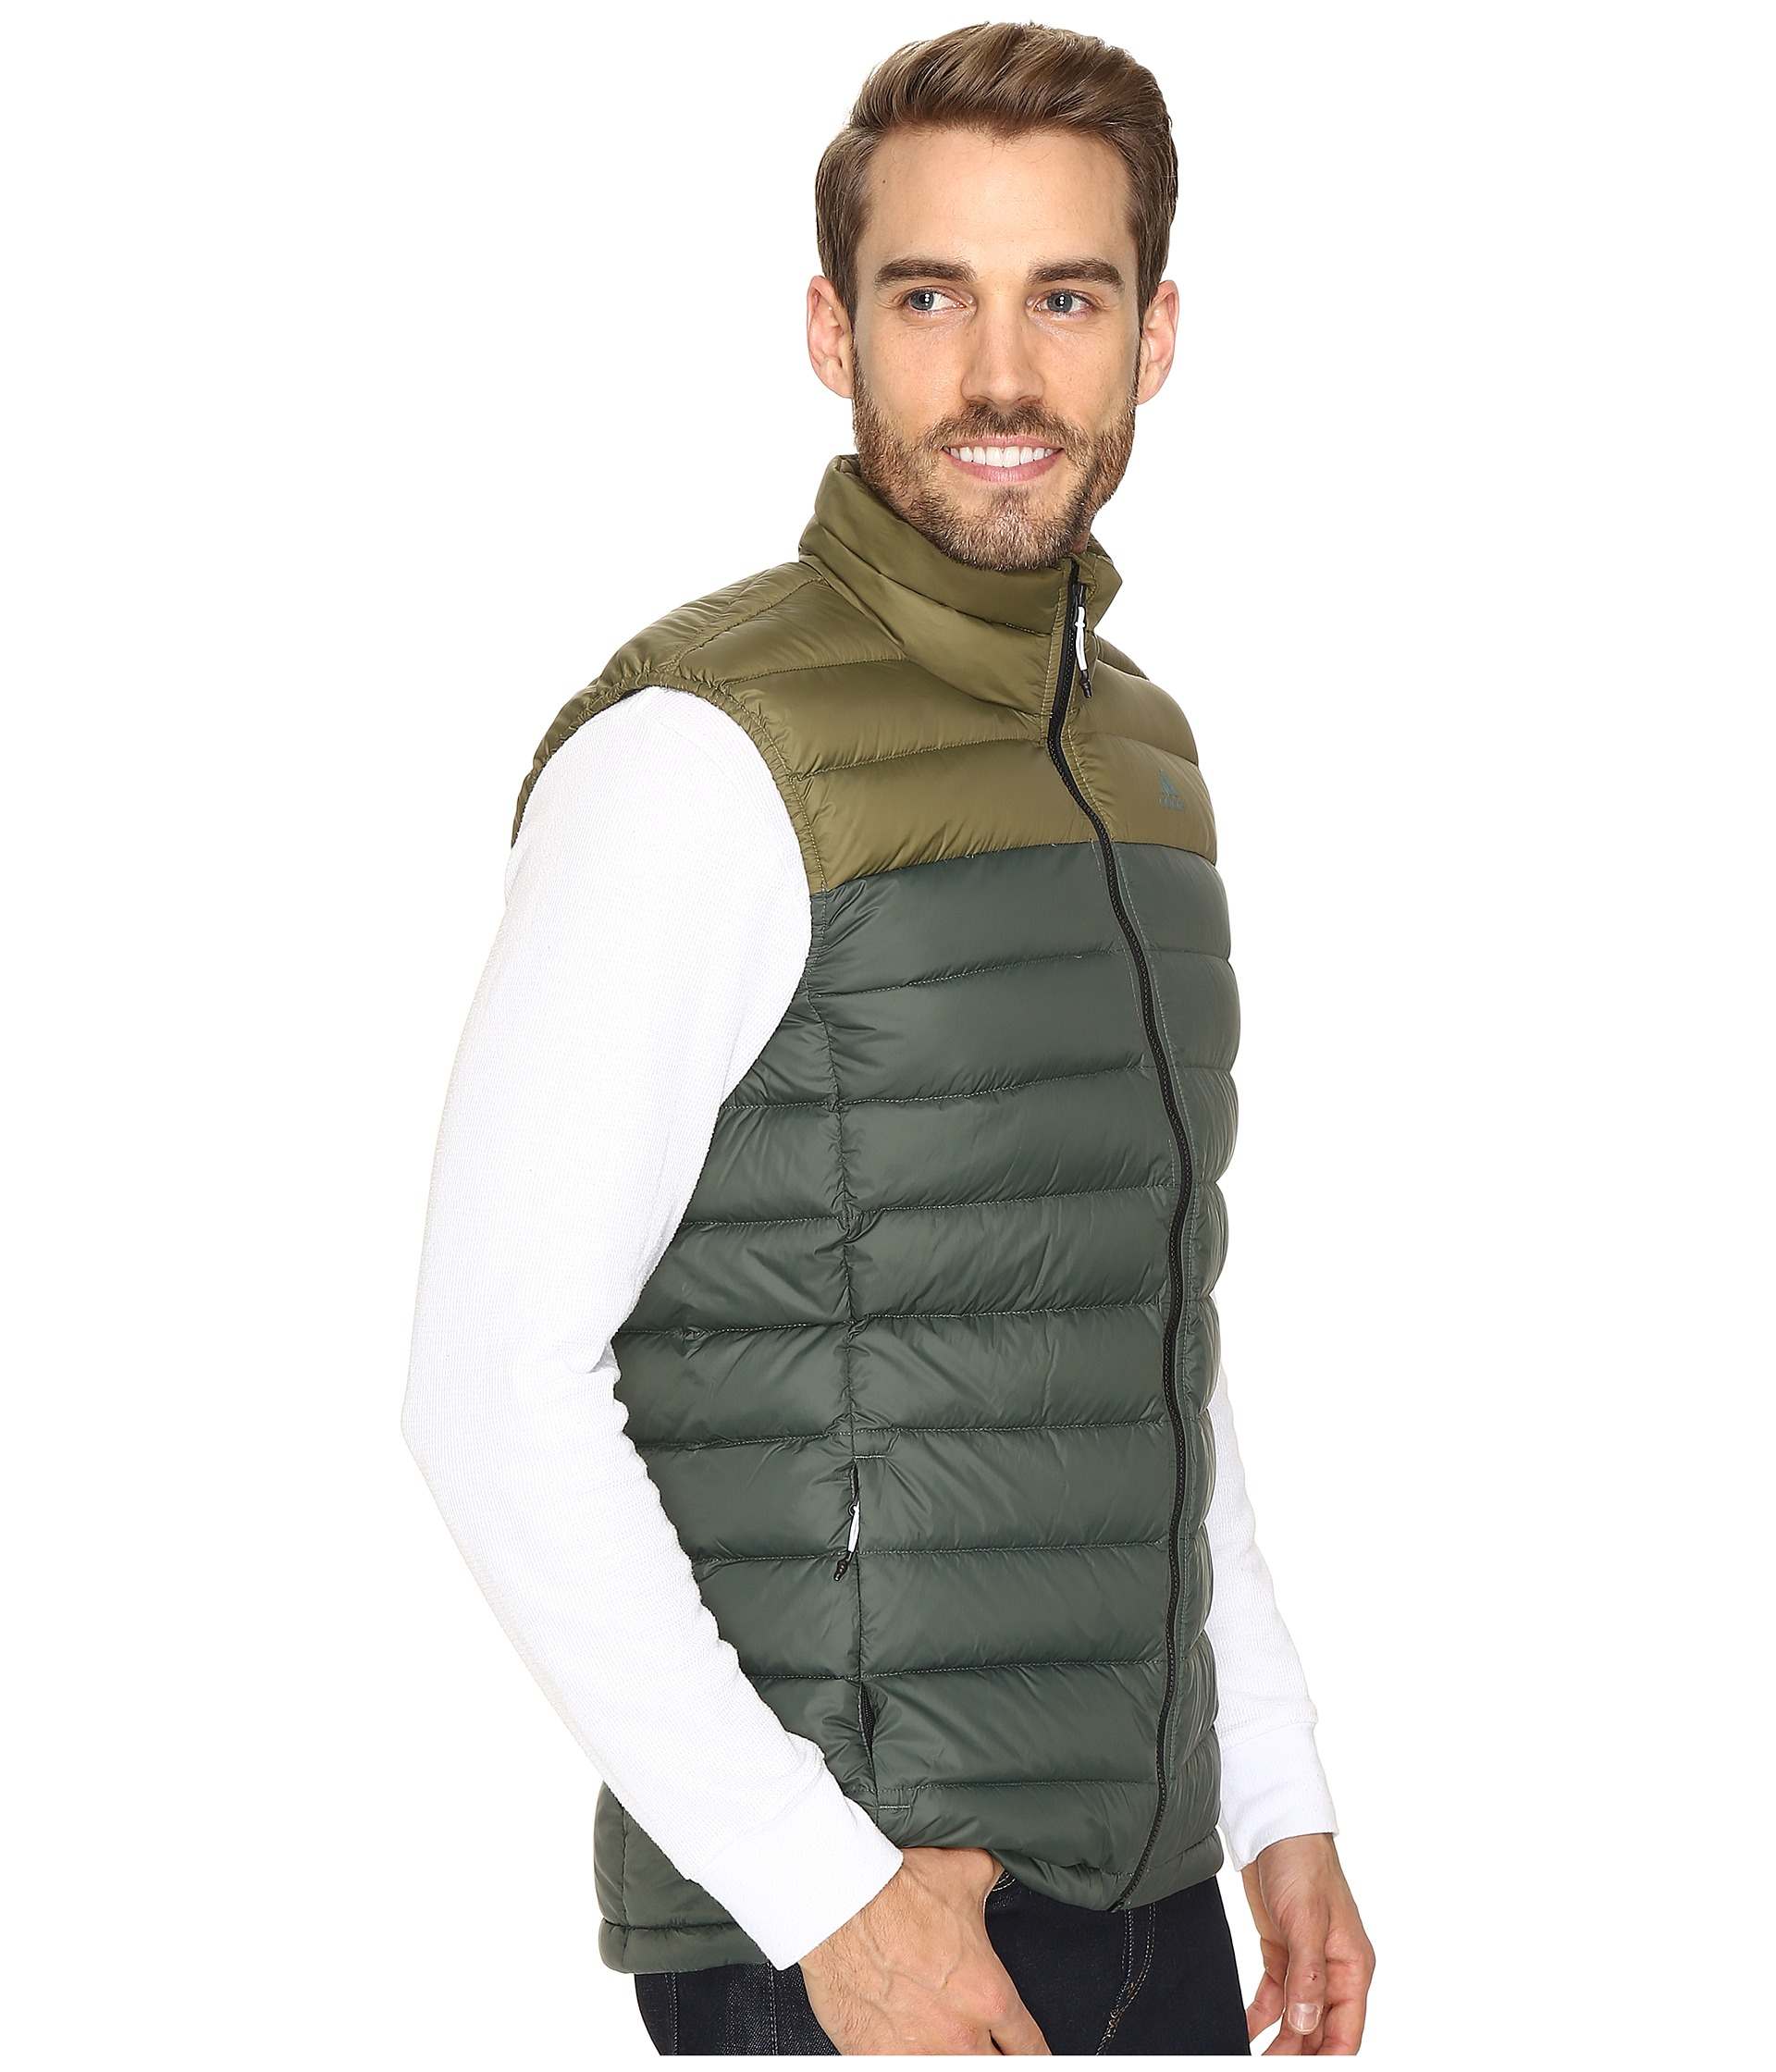 Light down vest black utility ivy zappos com free shipping both ways